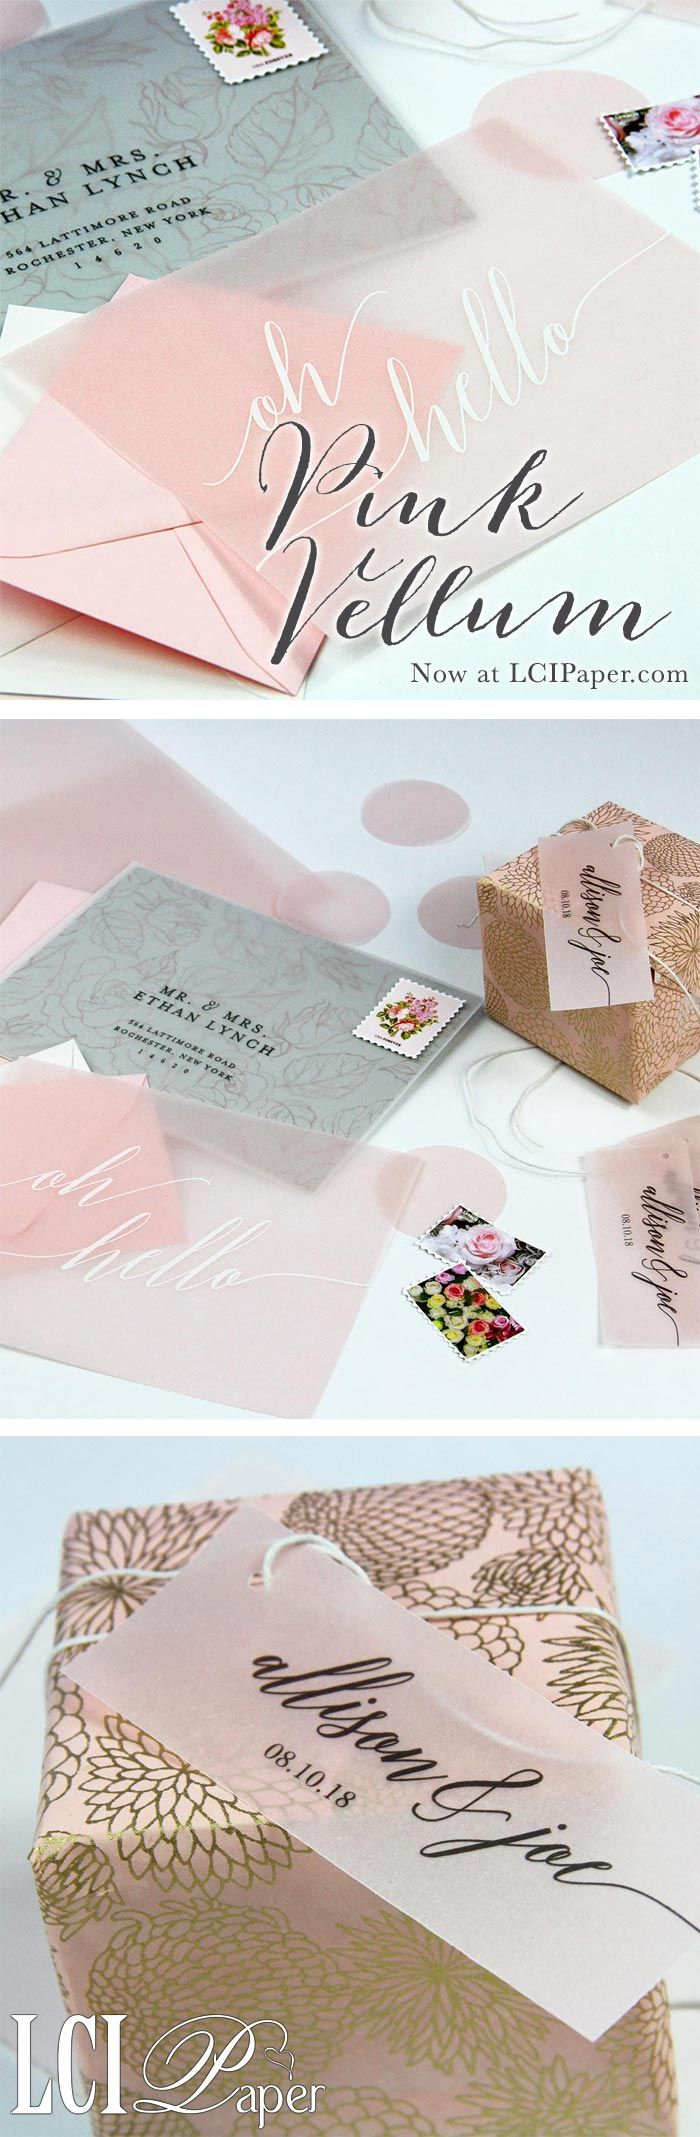 pink translucent vellum paper now available at lci paper perfect